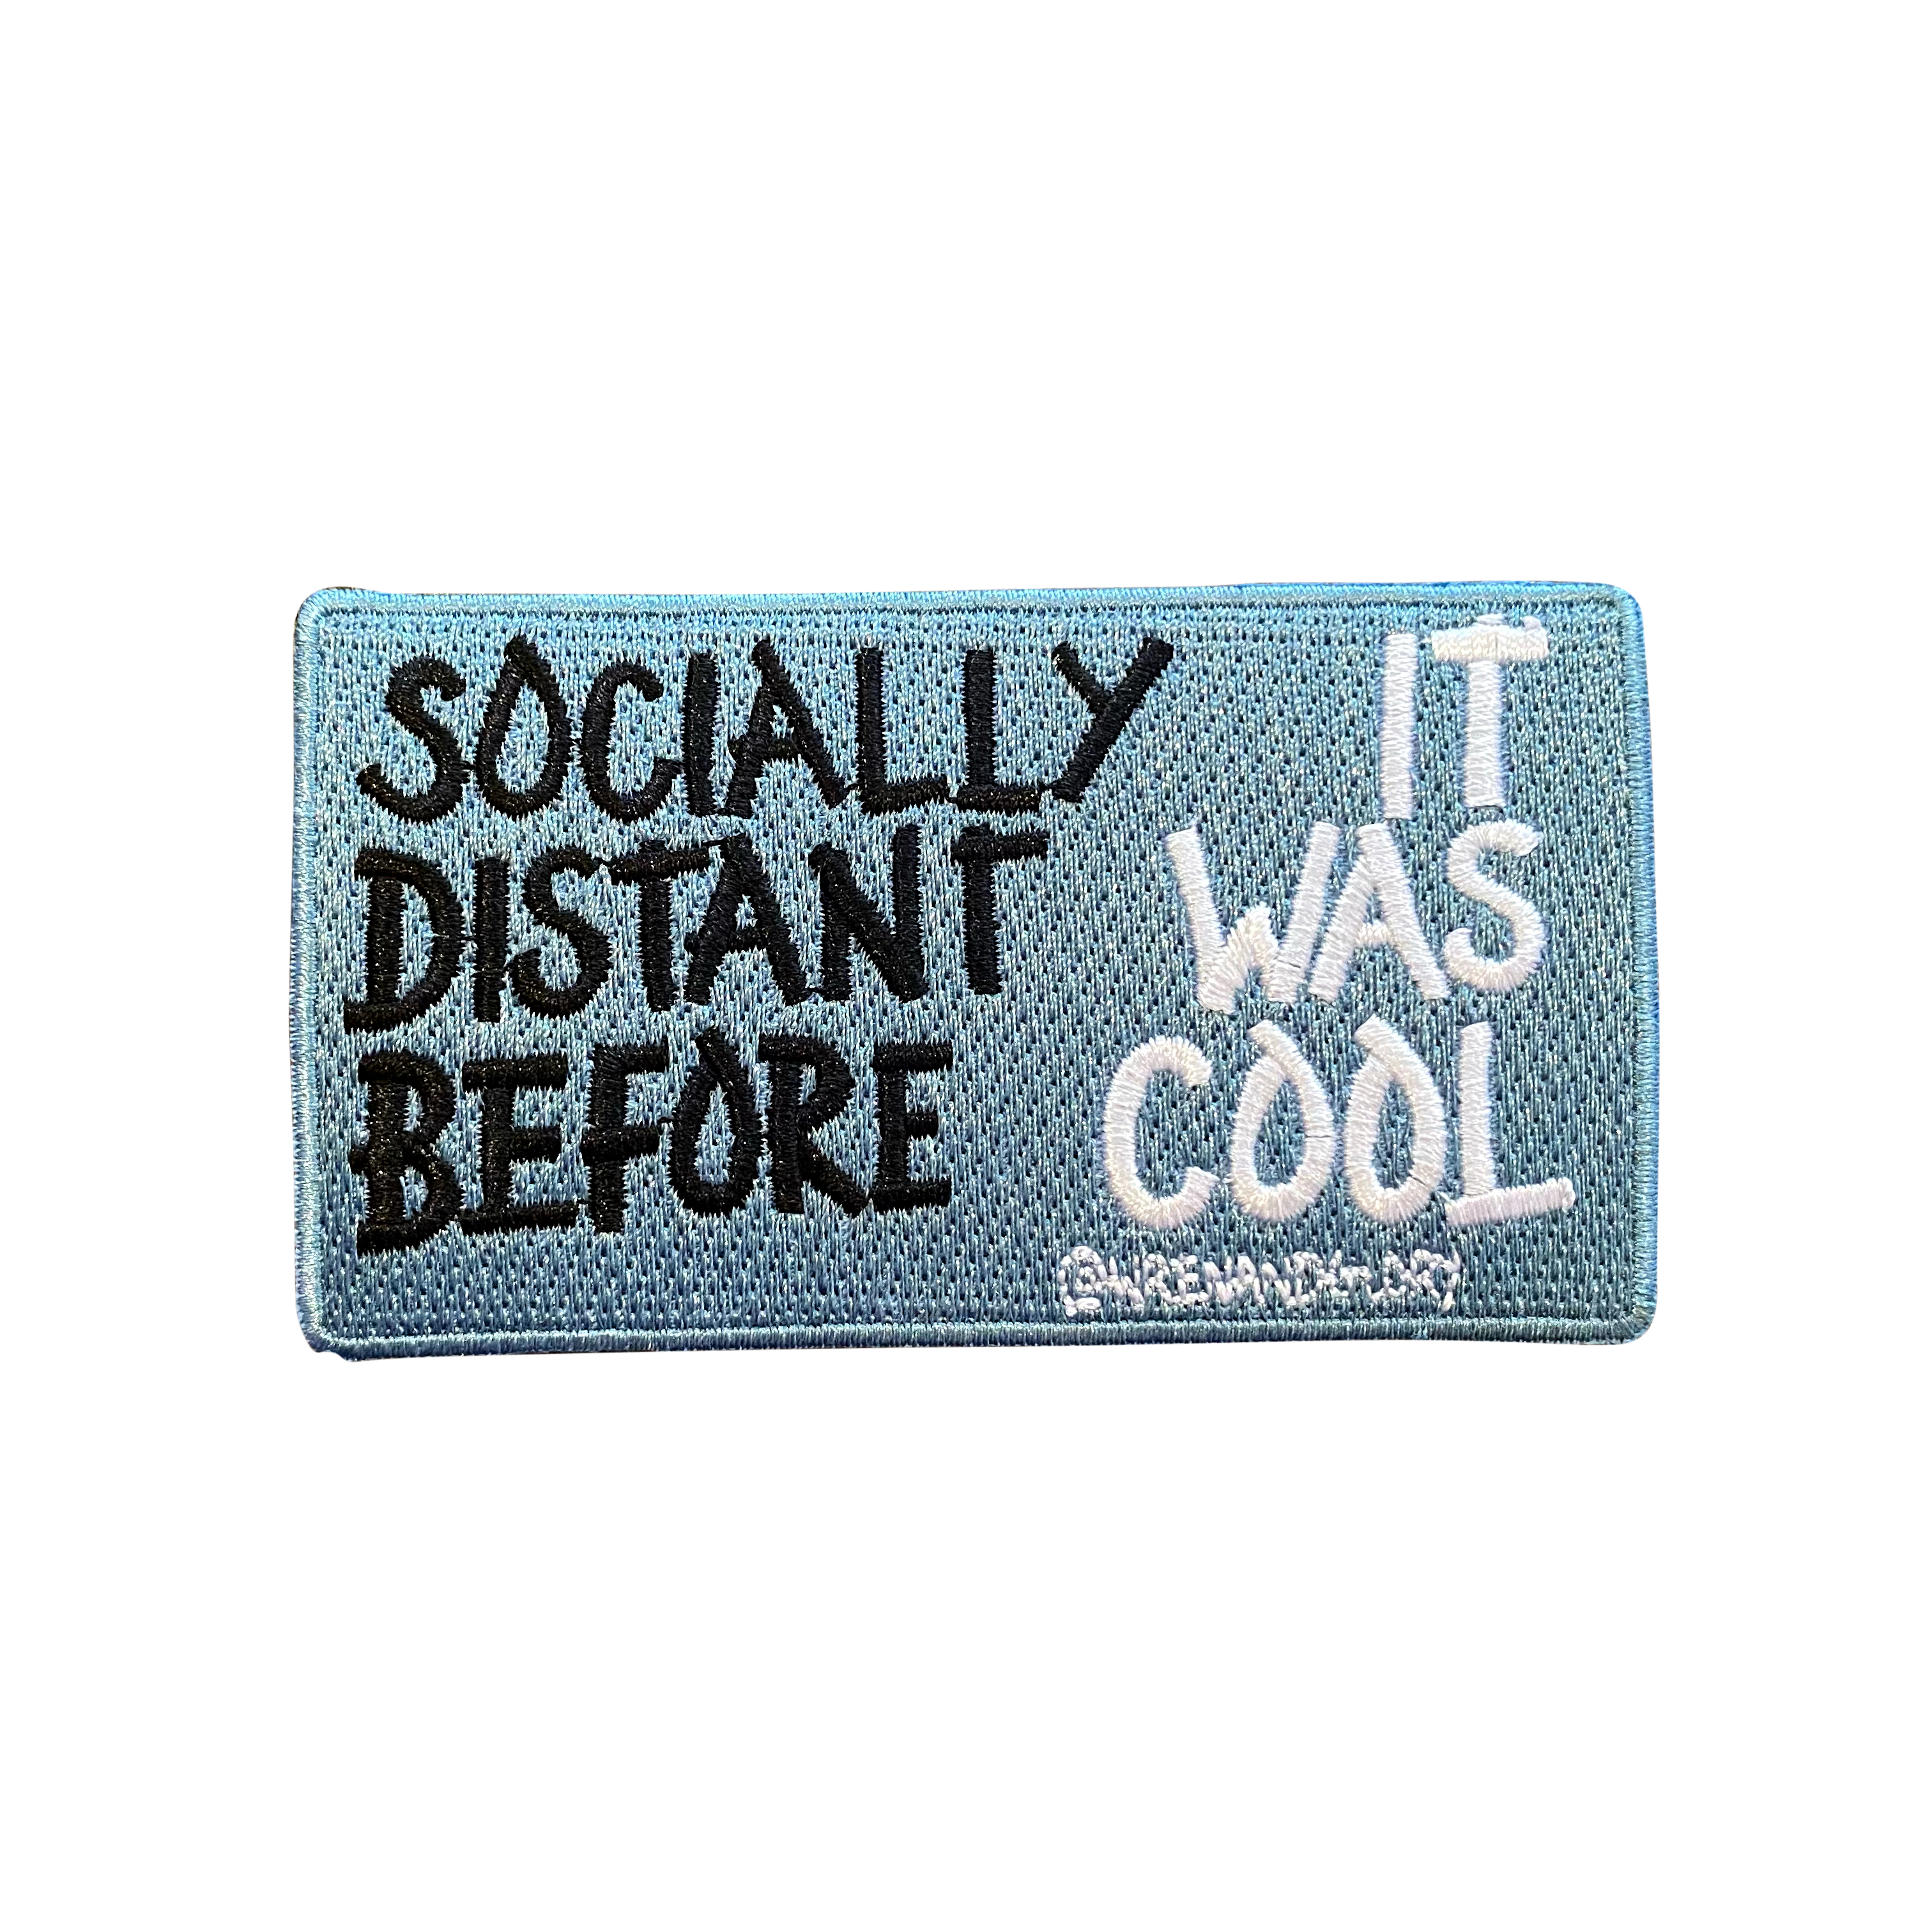 'Socially Distanced' Embroidered Patch